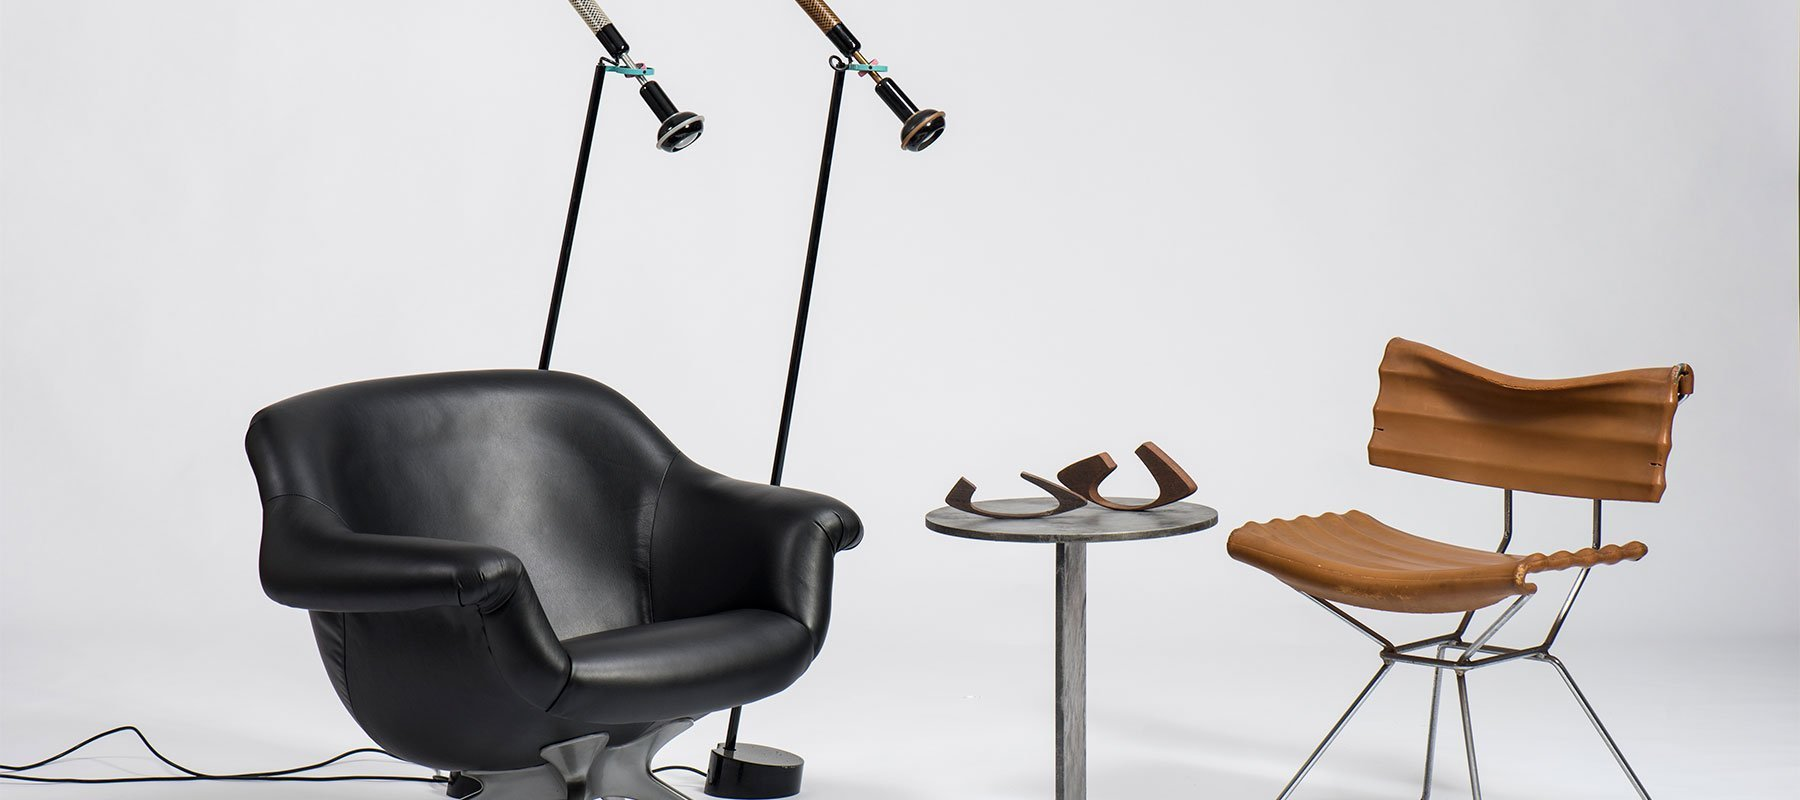 Black leather Angelo Mangiarotti chair with two Grip Floor lamps, and a Mangiarotti Tensio chair